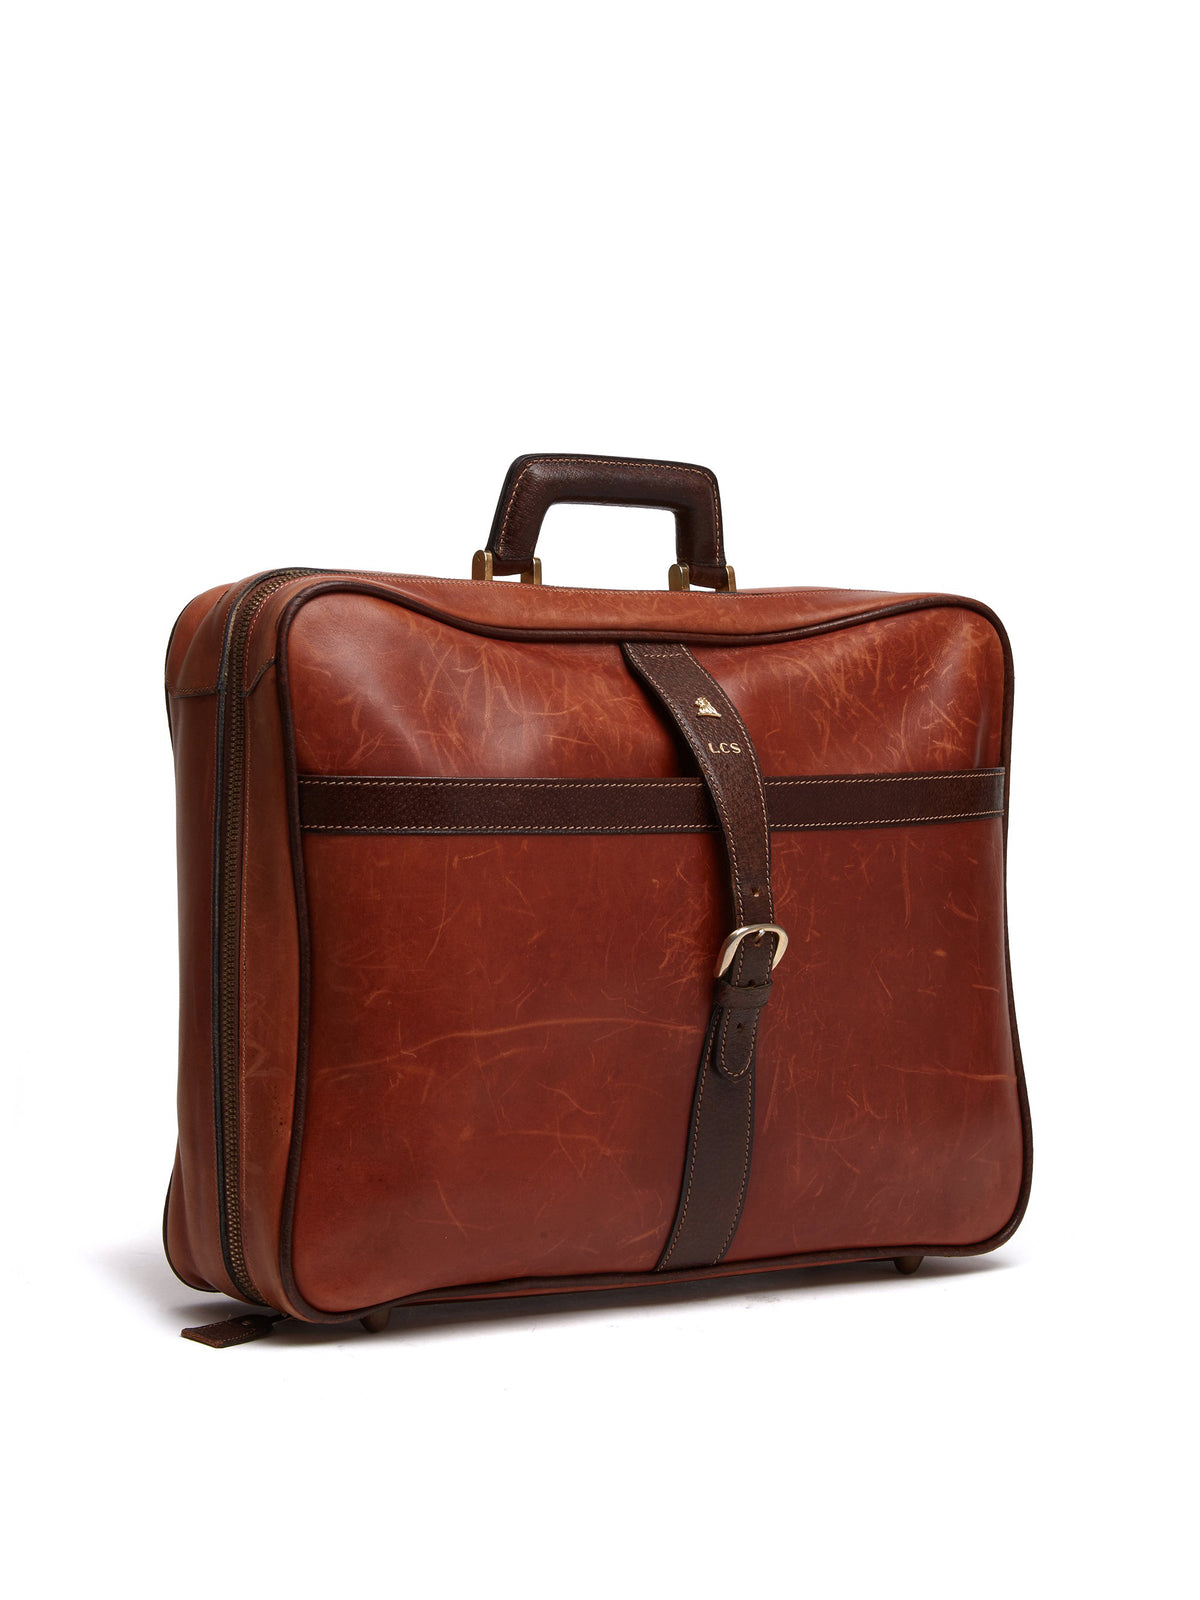 Mark Cross Vintage Leather Suitcase Chocolate Side